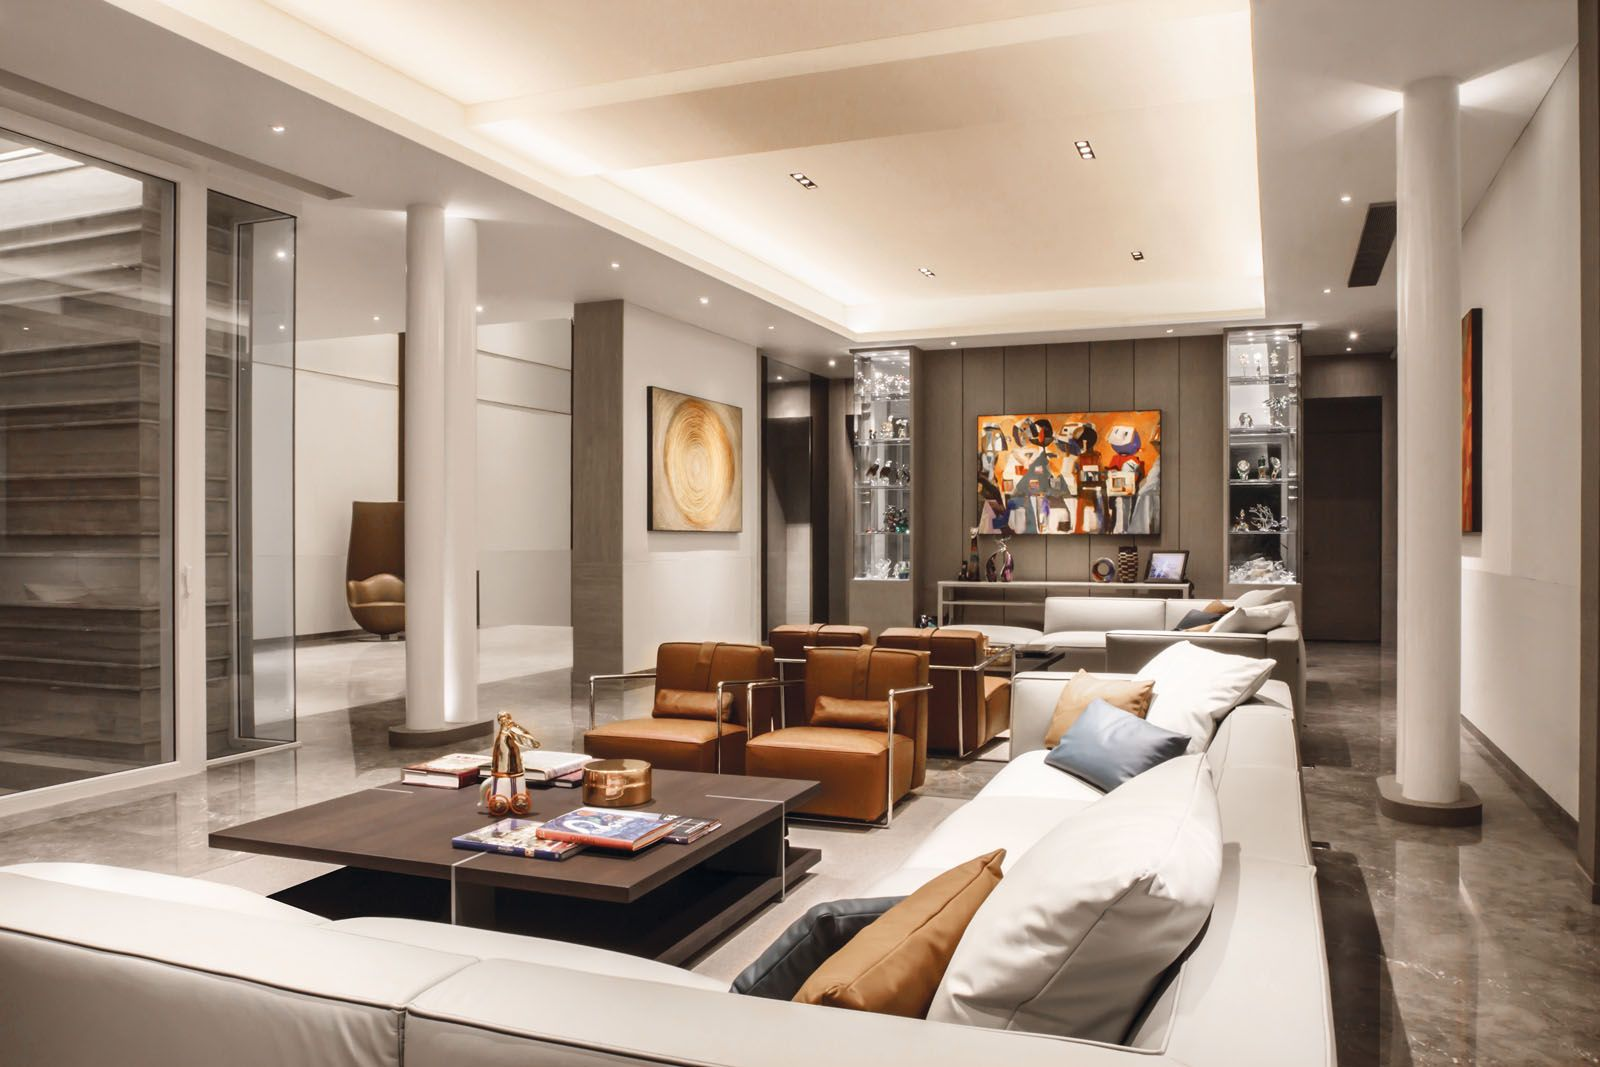 The living area features Poliform coffee tables and sectional sofas, and armchairs from Flexform